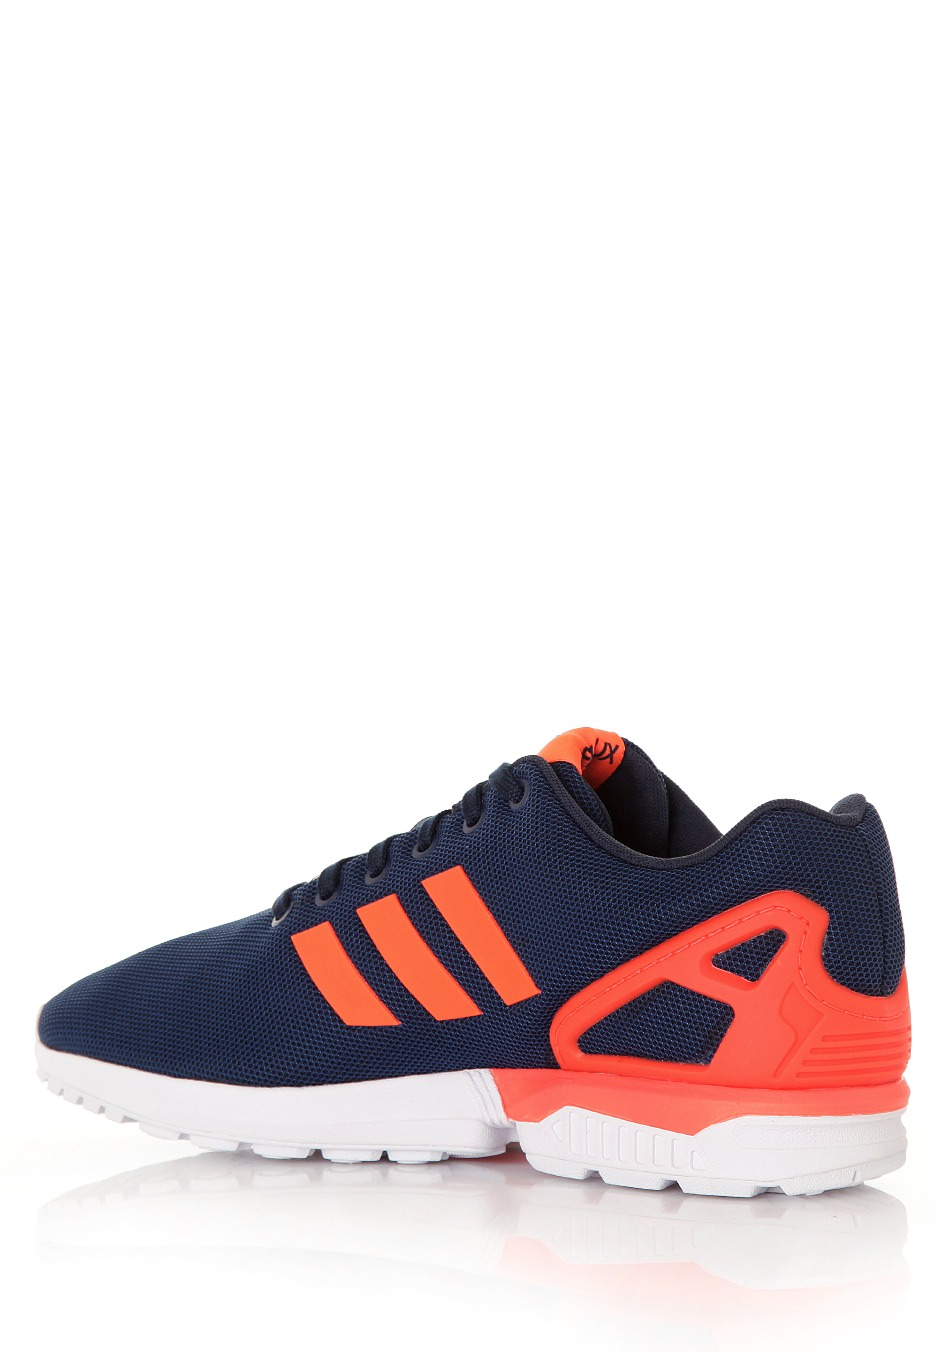 wholesale dealer 67bfd 38005 ... top quality click esc to close the window. adidas zx flux new navy  infrared running